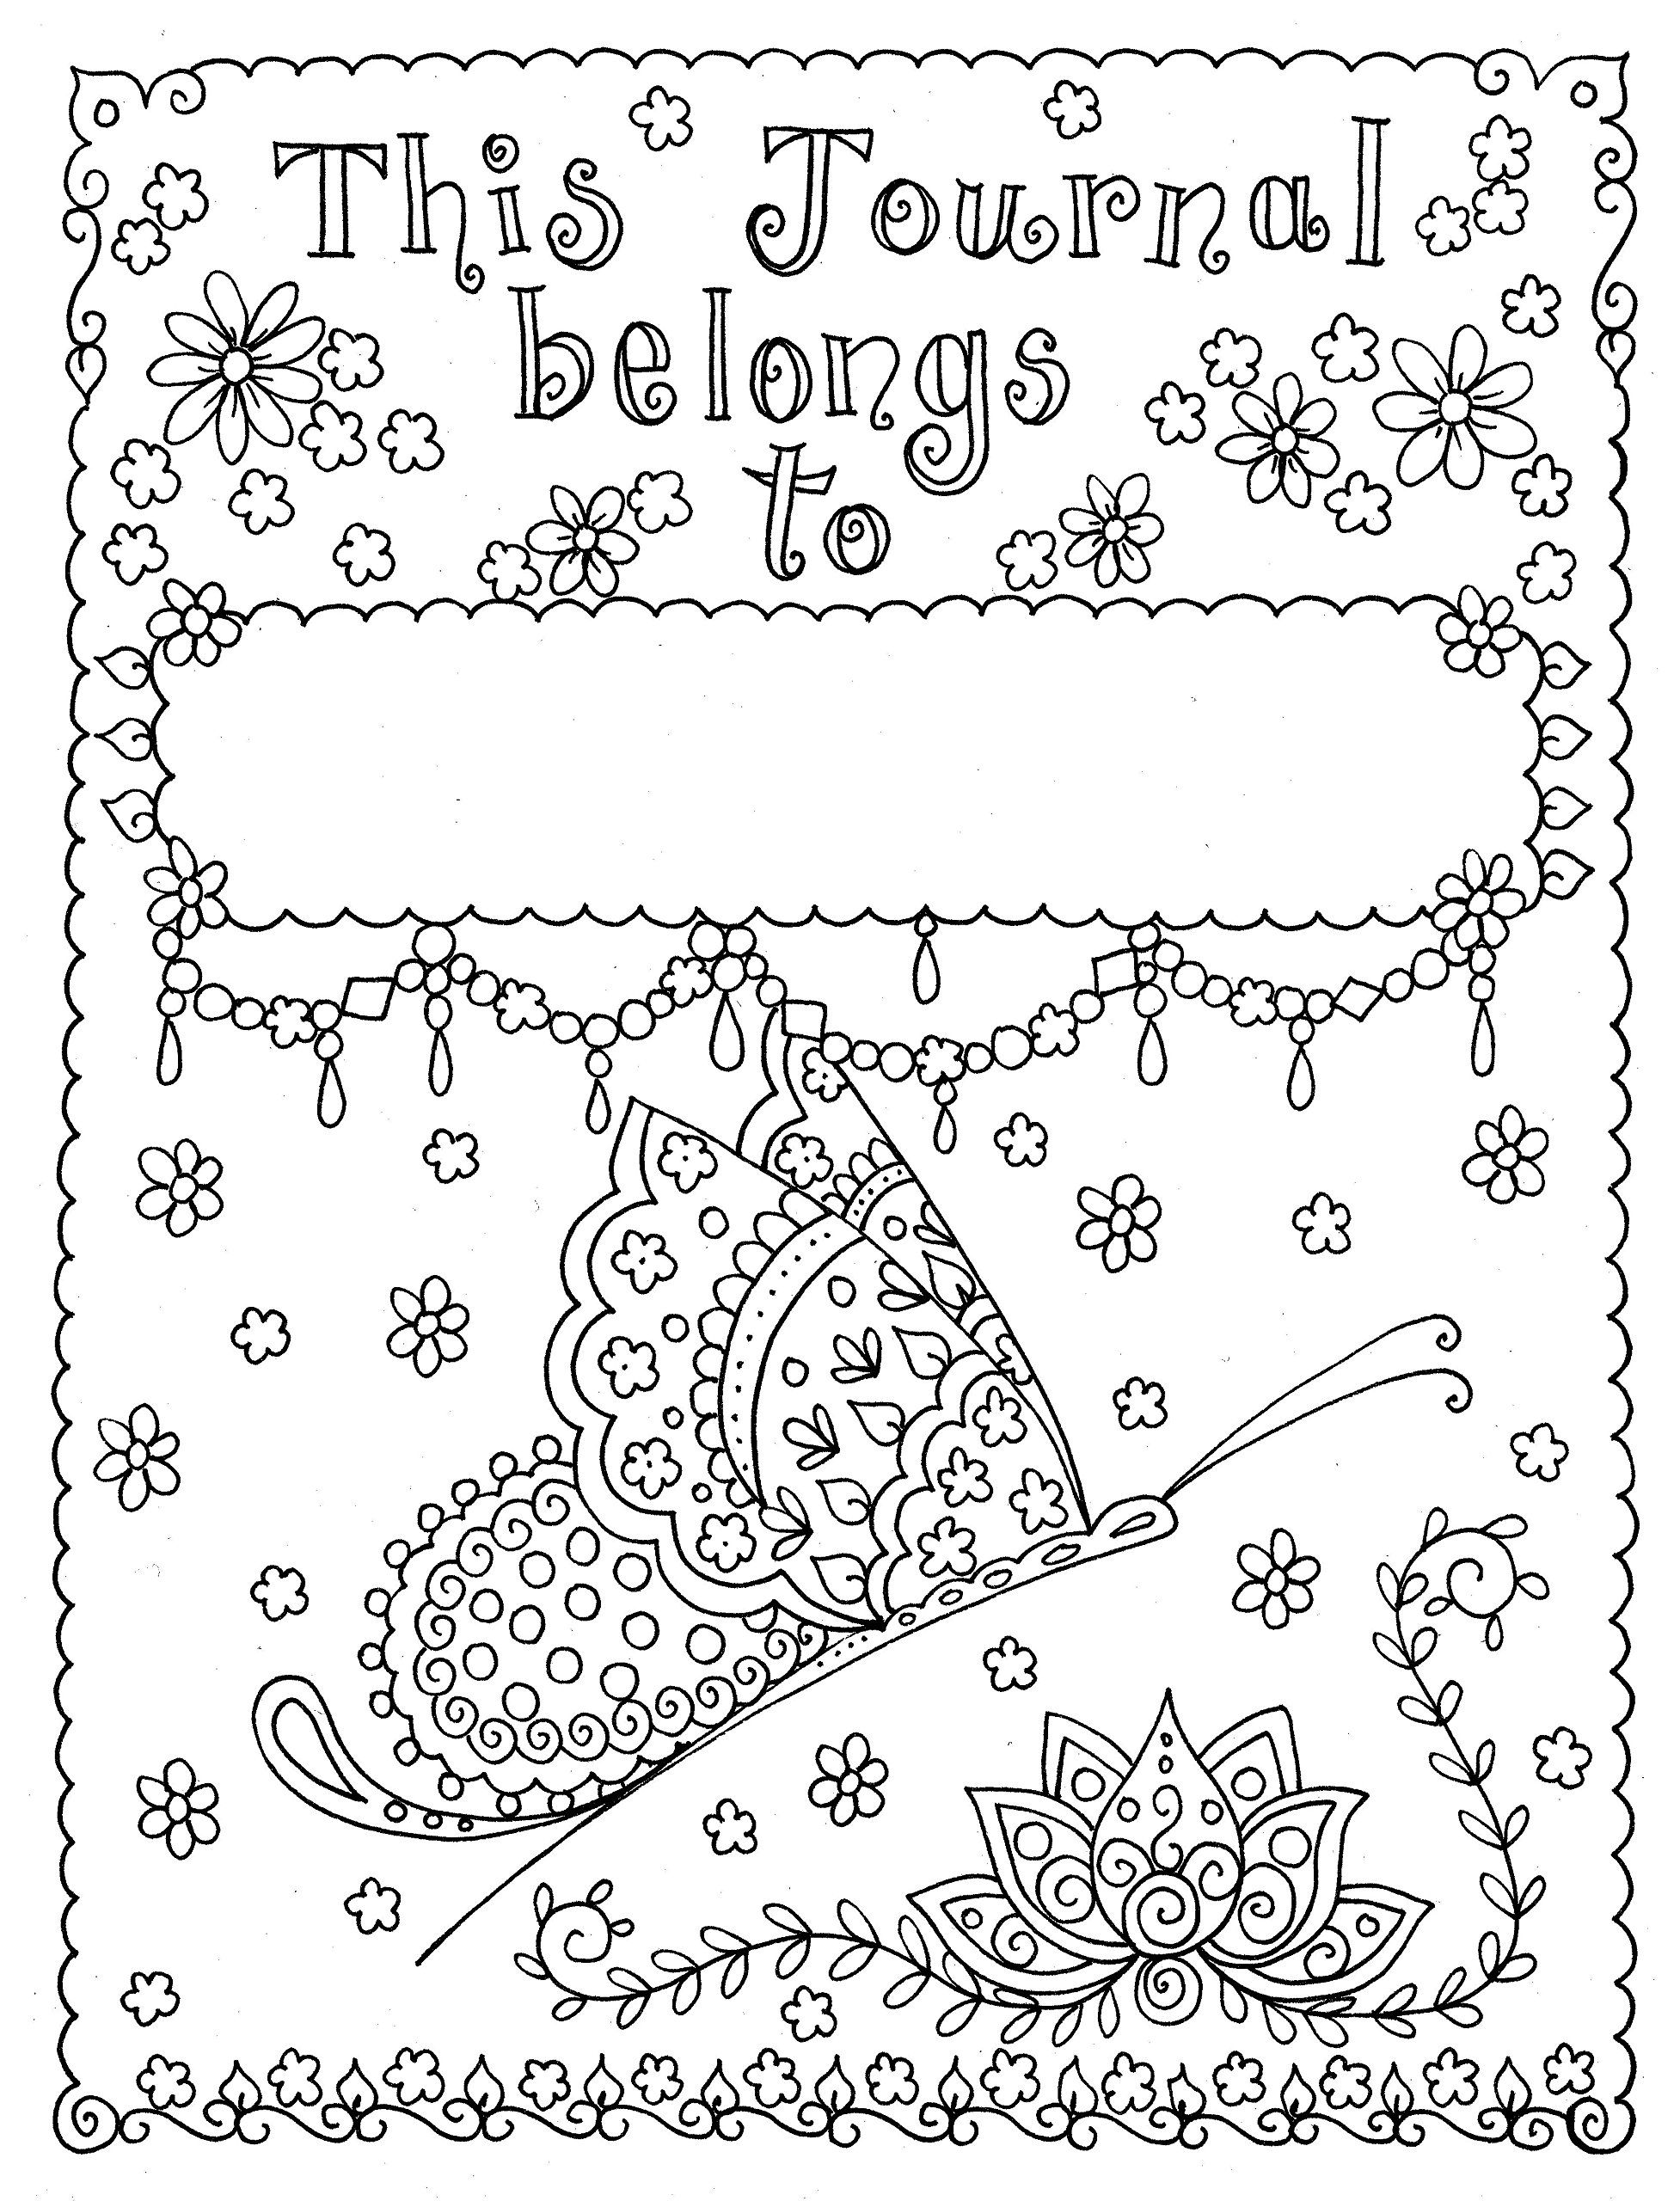 Coloring Journal And Coloring Book Color Me Thankful Is Both Deborah Muller 0635292812002 Amazon Com B Coloring Journal Coloring Books Christian Coloring